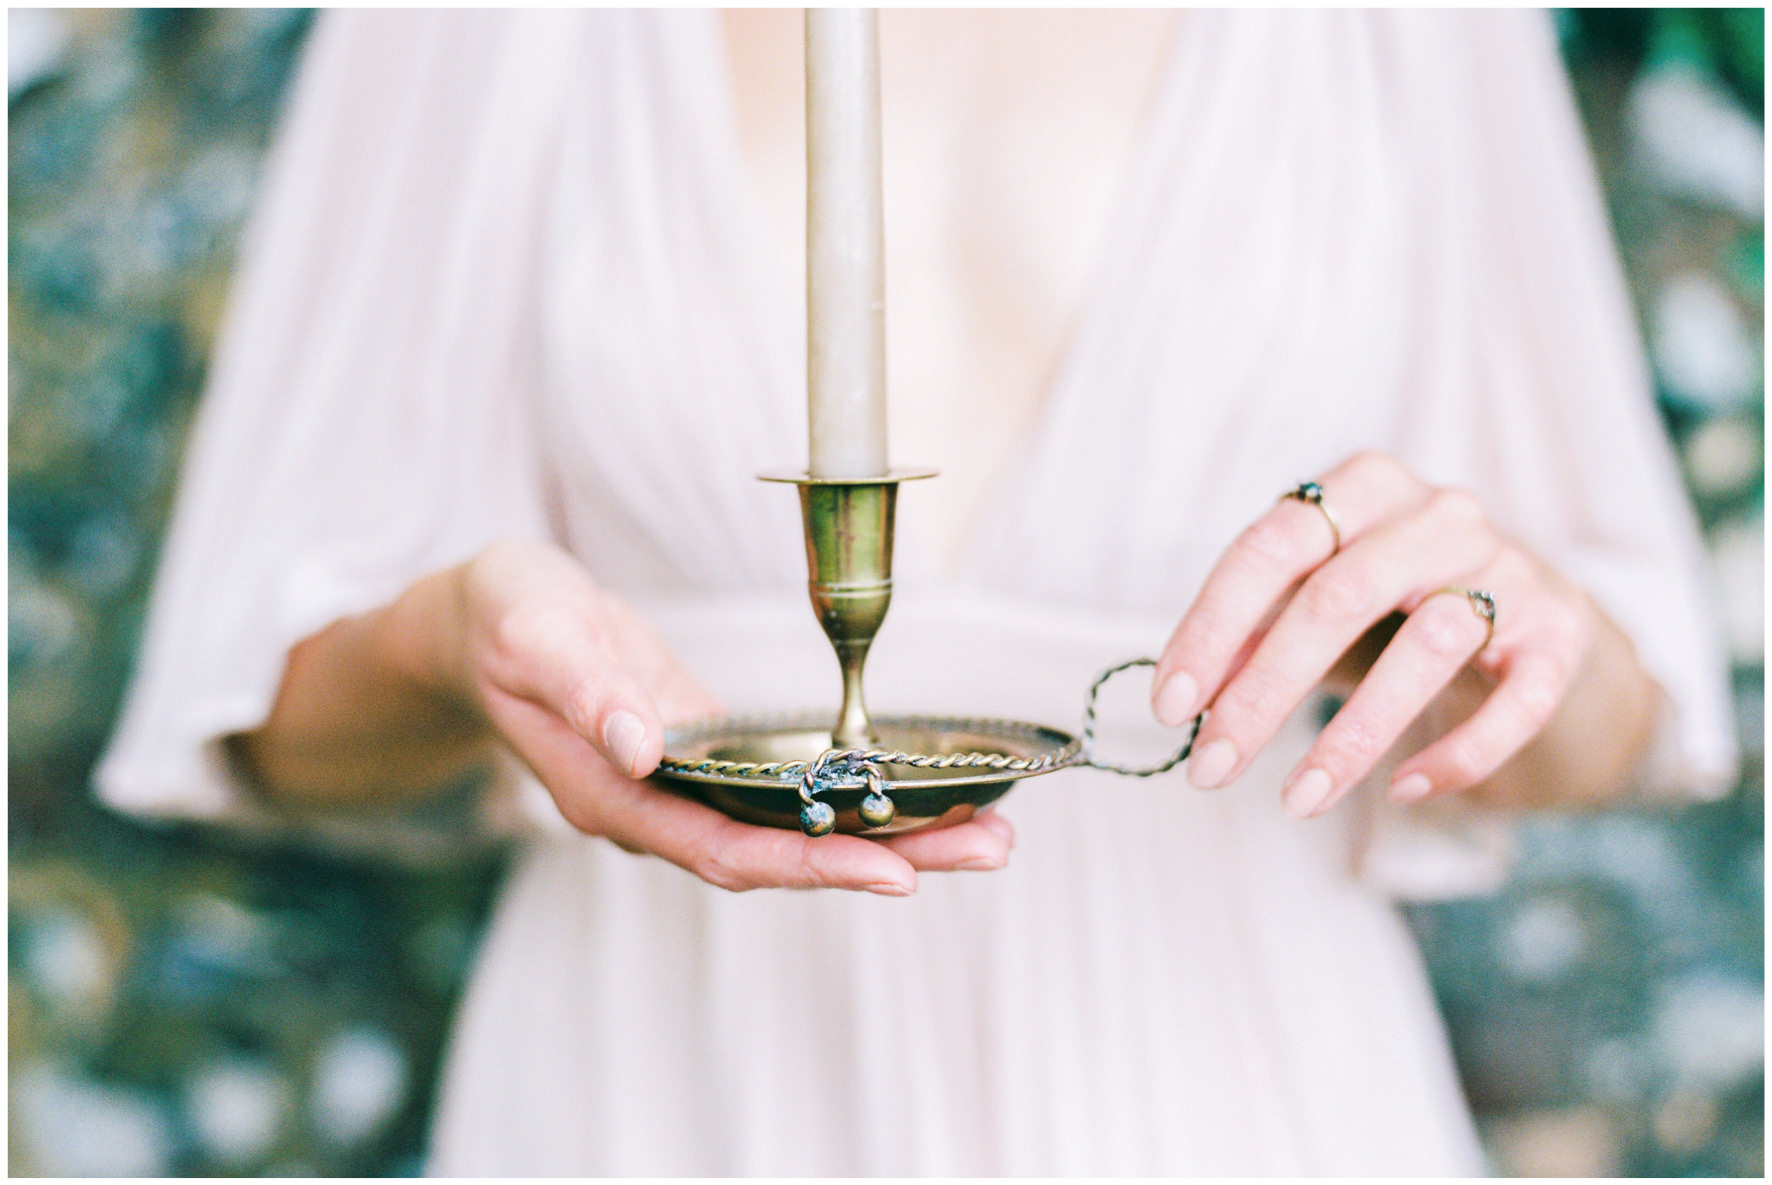 Lucy Davenport Photography, Once Wed, Home Creations, The Wedding Stylist, Verity & Thyme, candleholder, coloured dress